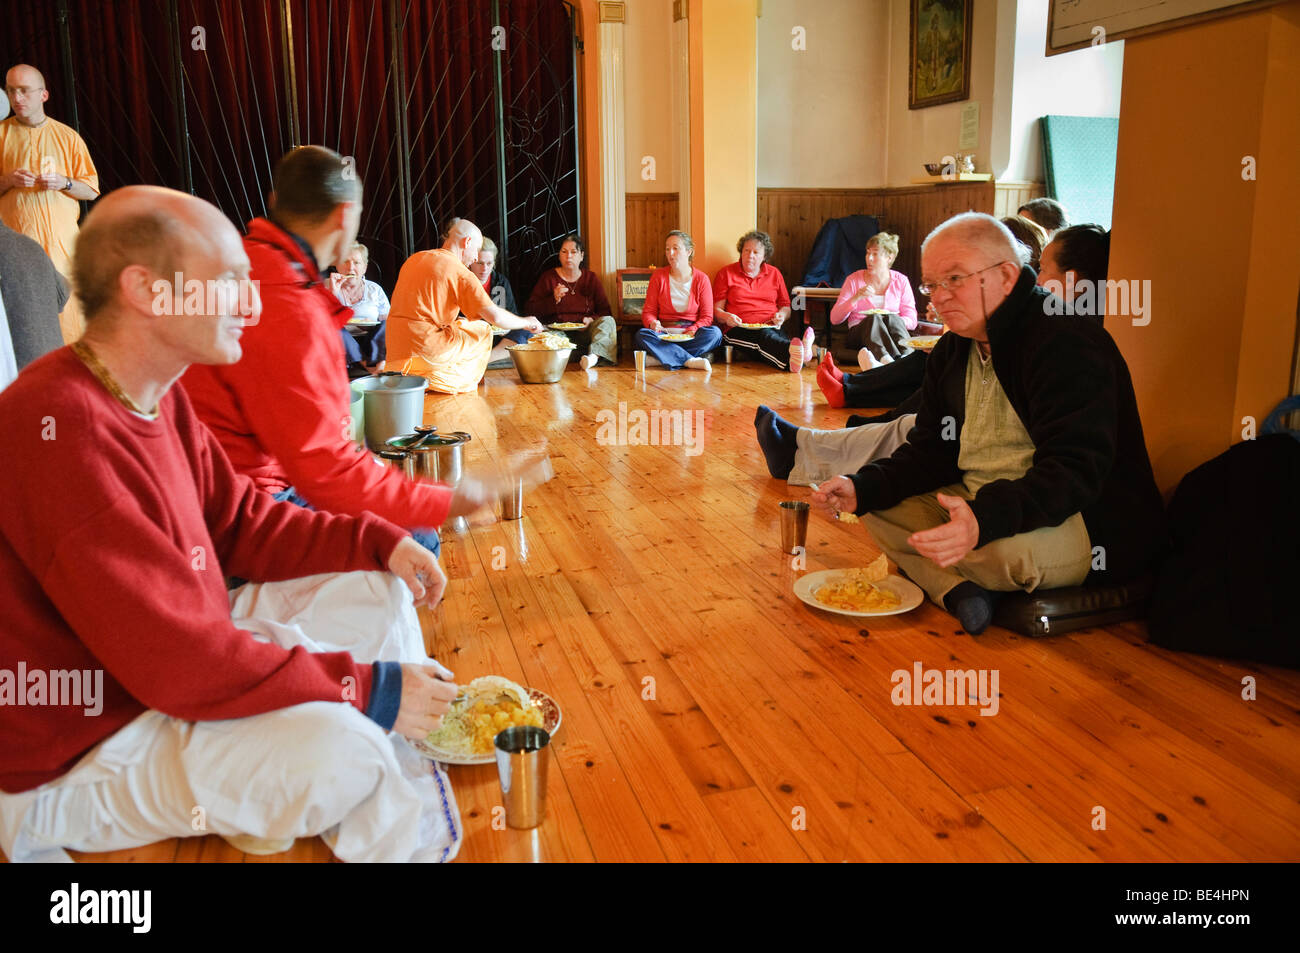 ISKCON Hare Krishna disciples and visitors eat a vegetarian feast in a temple room Stock Photo